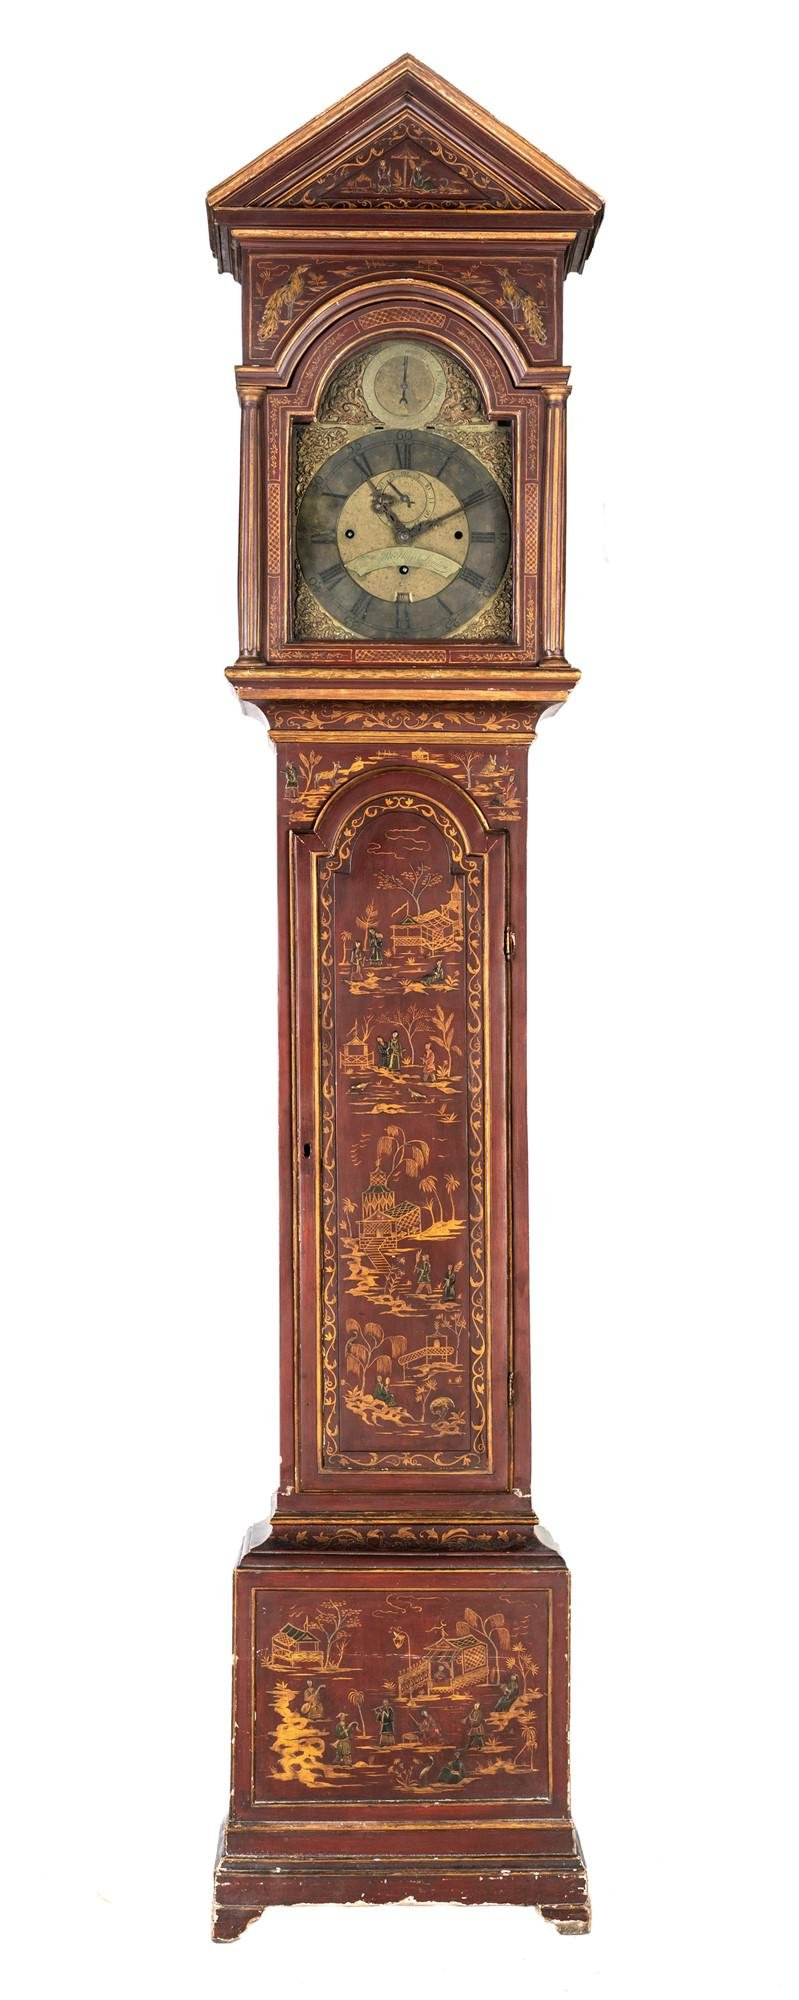 Tower clock in red lacquered wood